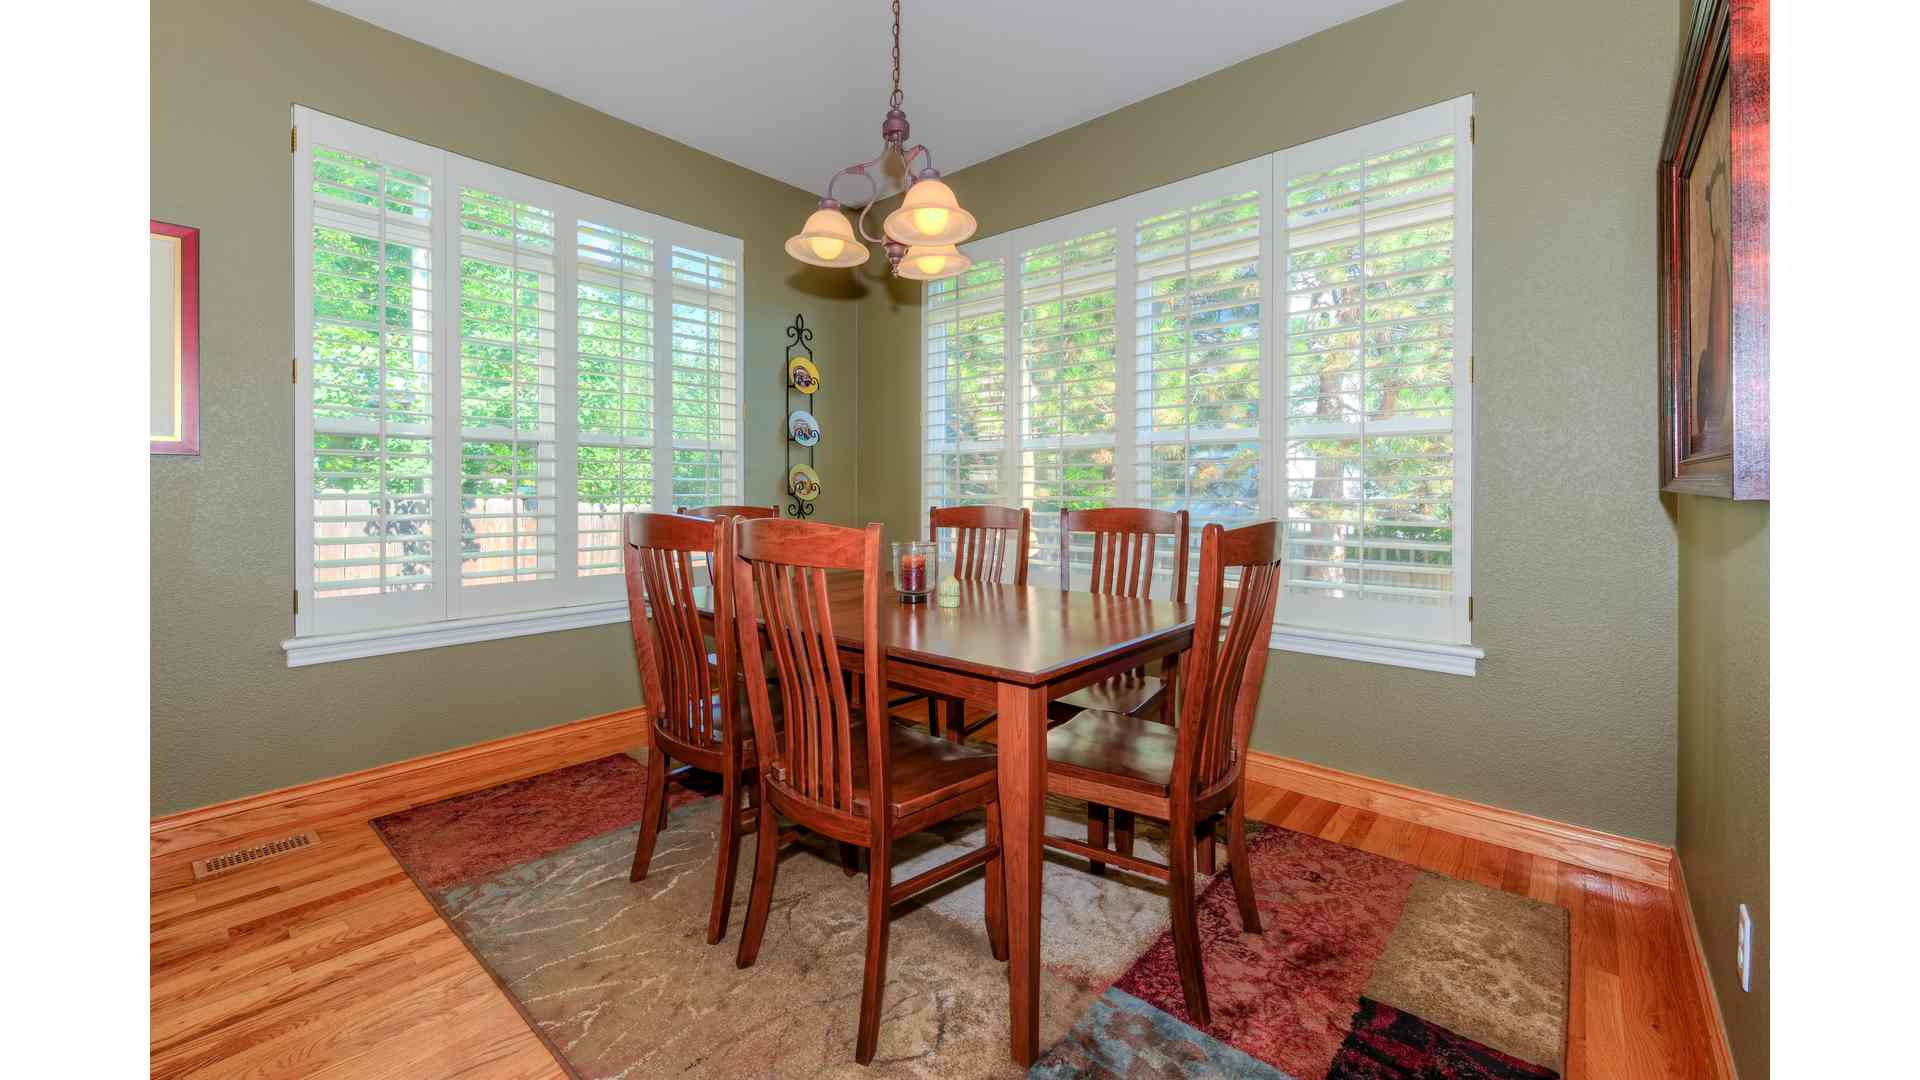 07 1995 Dining Room 5TMDE Default RVT2 NR 1920 - Real Estate Photos